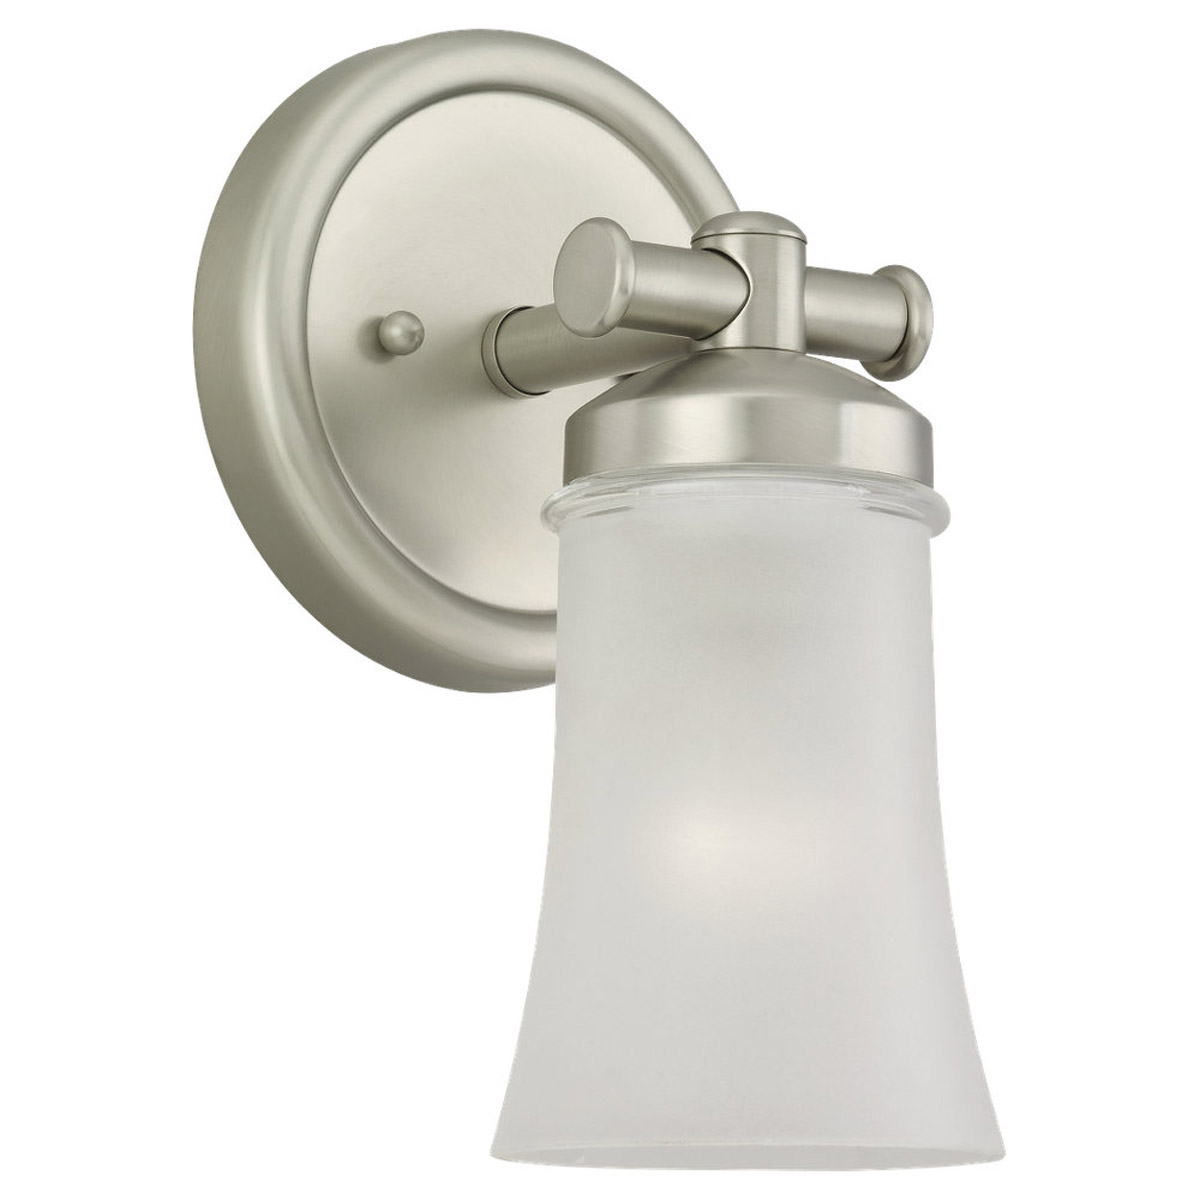 Sea Gull Lighting Newport 1 Light Wall Sconce in Antique Brushed Nickel 44482BLE-965 photo